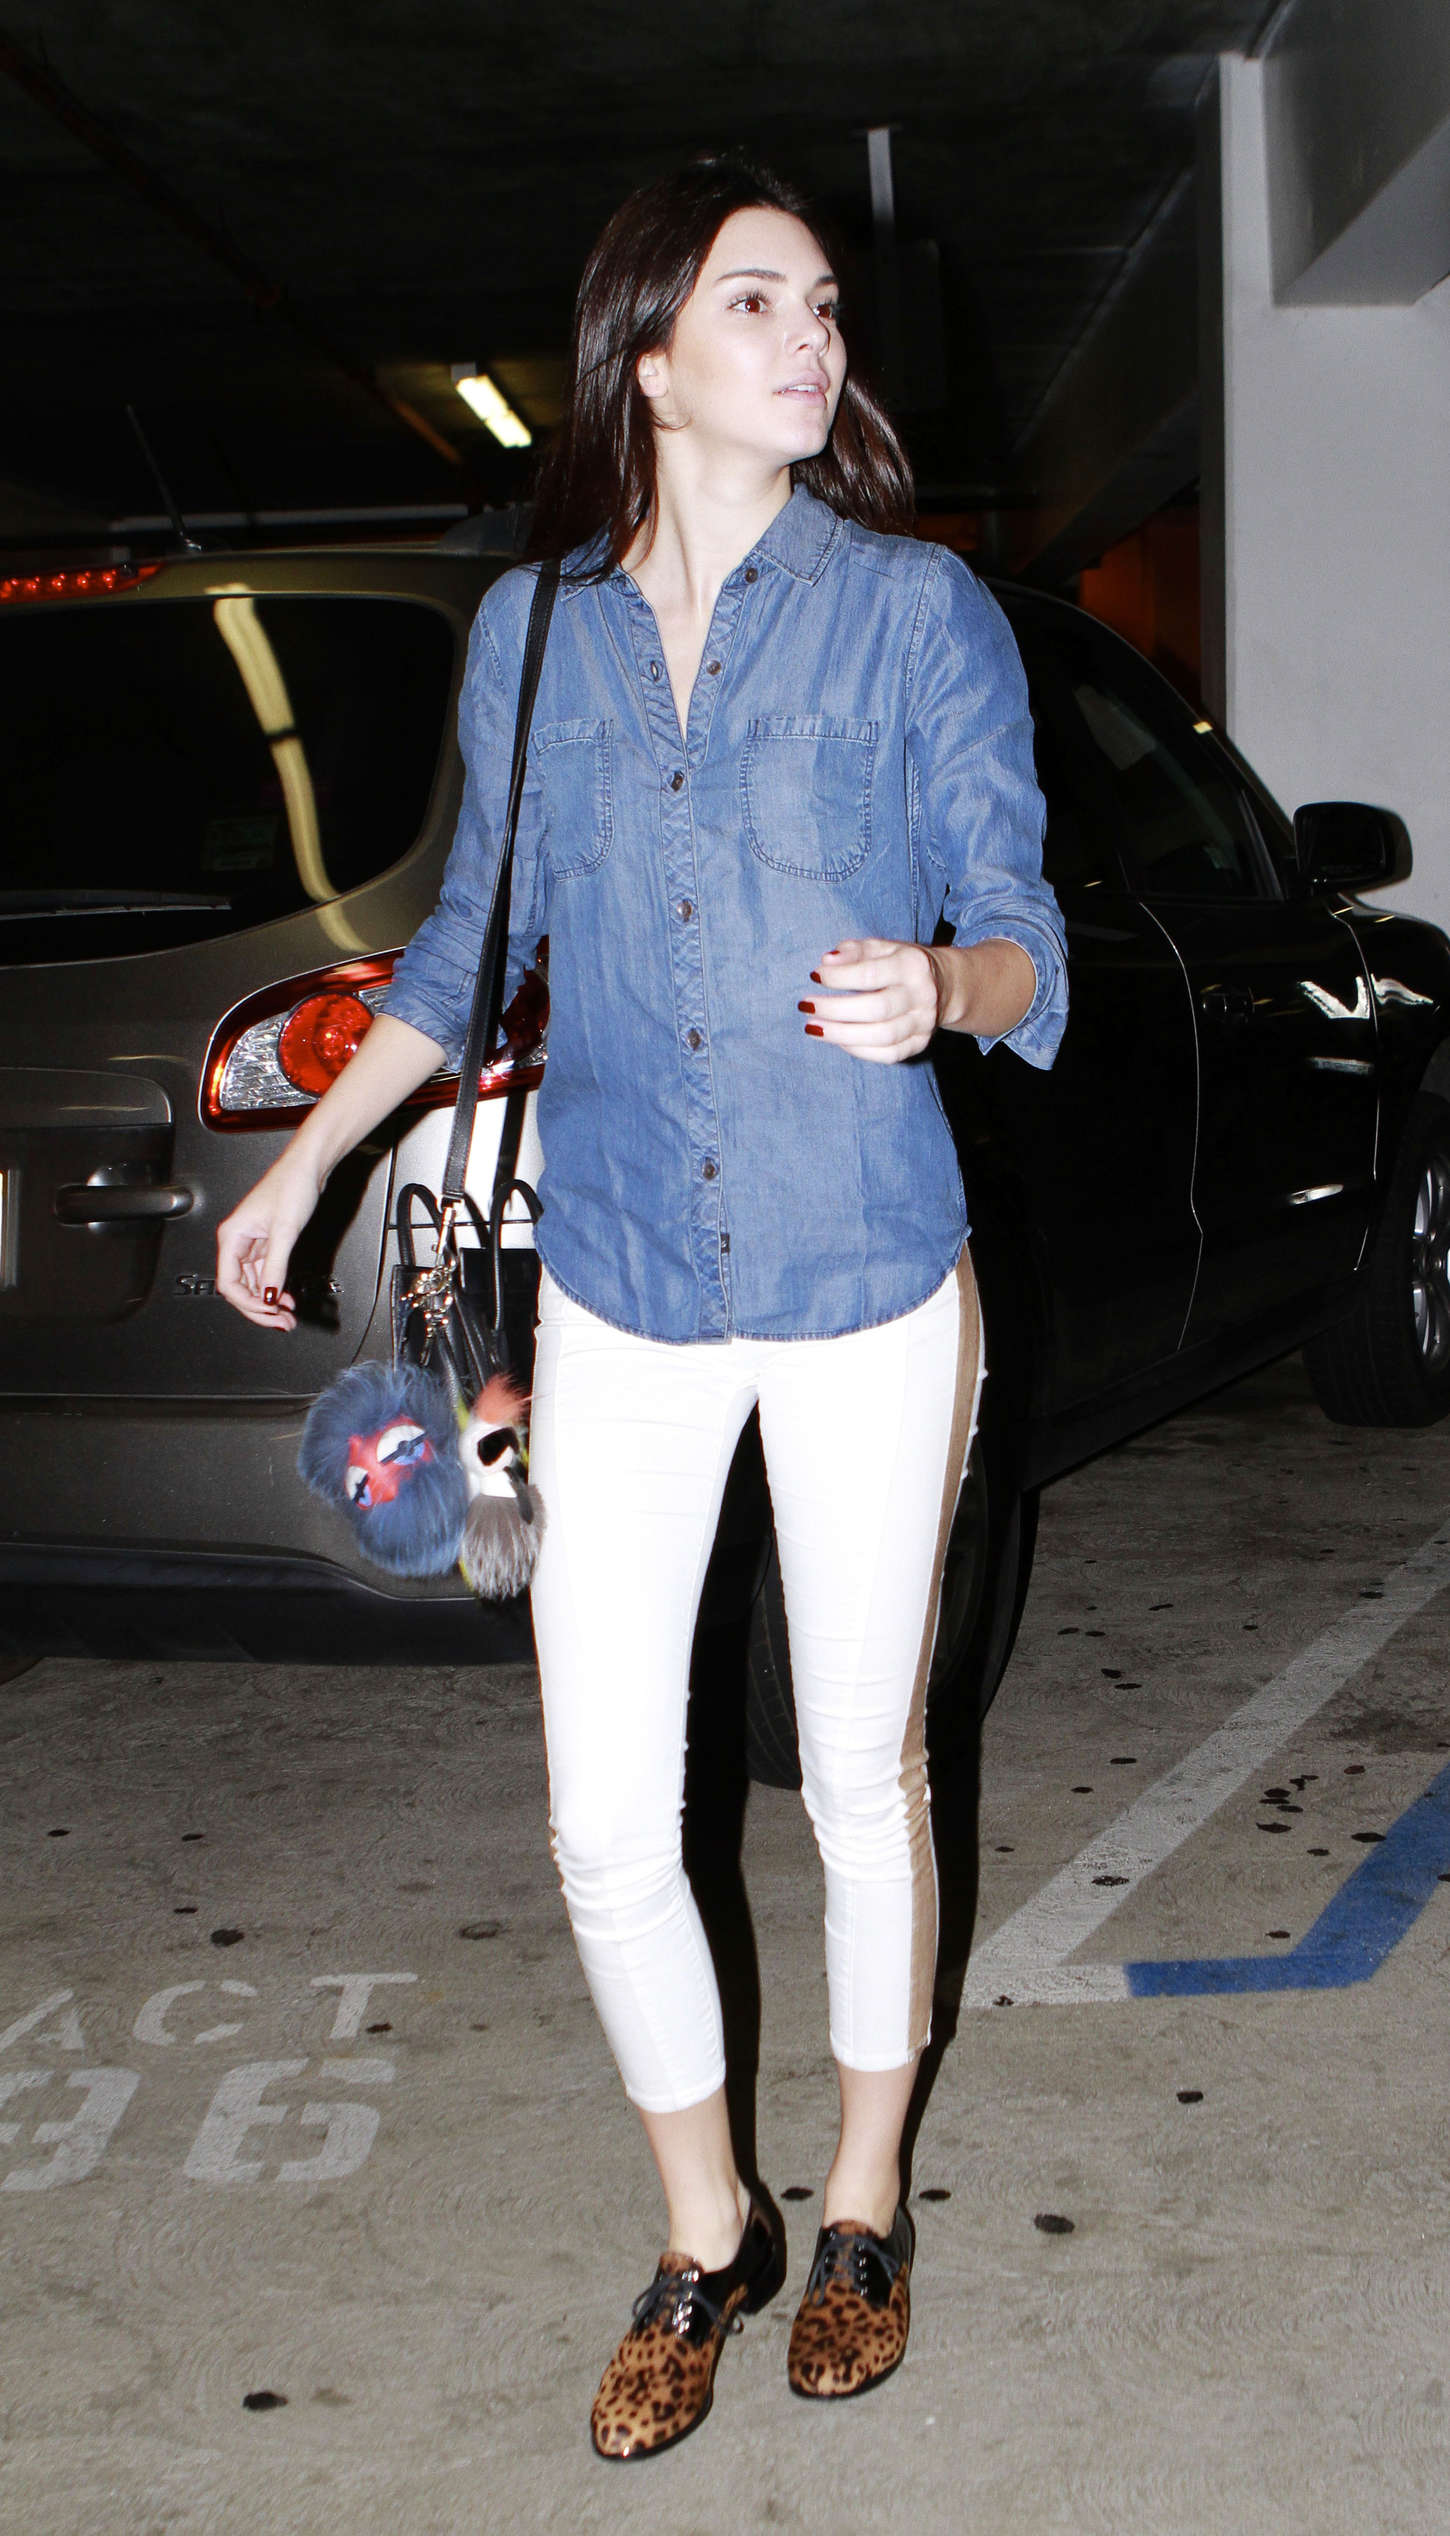 What Stella Mccartney Shoes Does Kendall Jenner Wearing